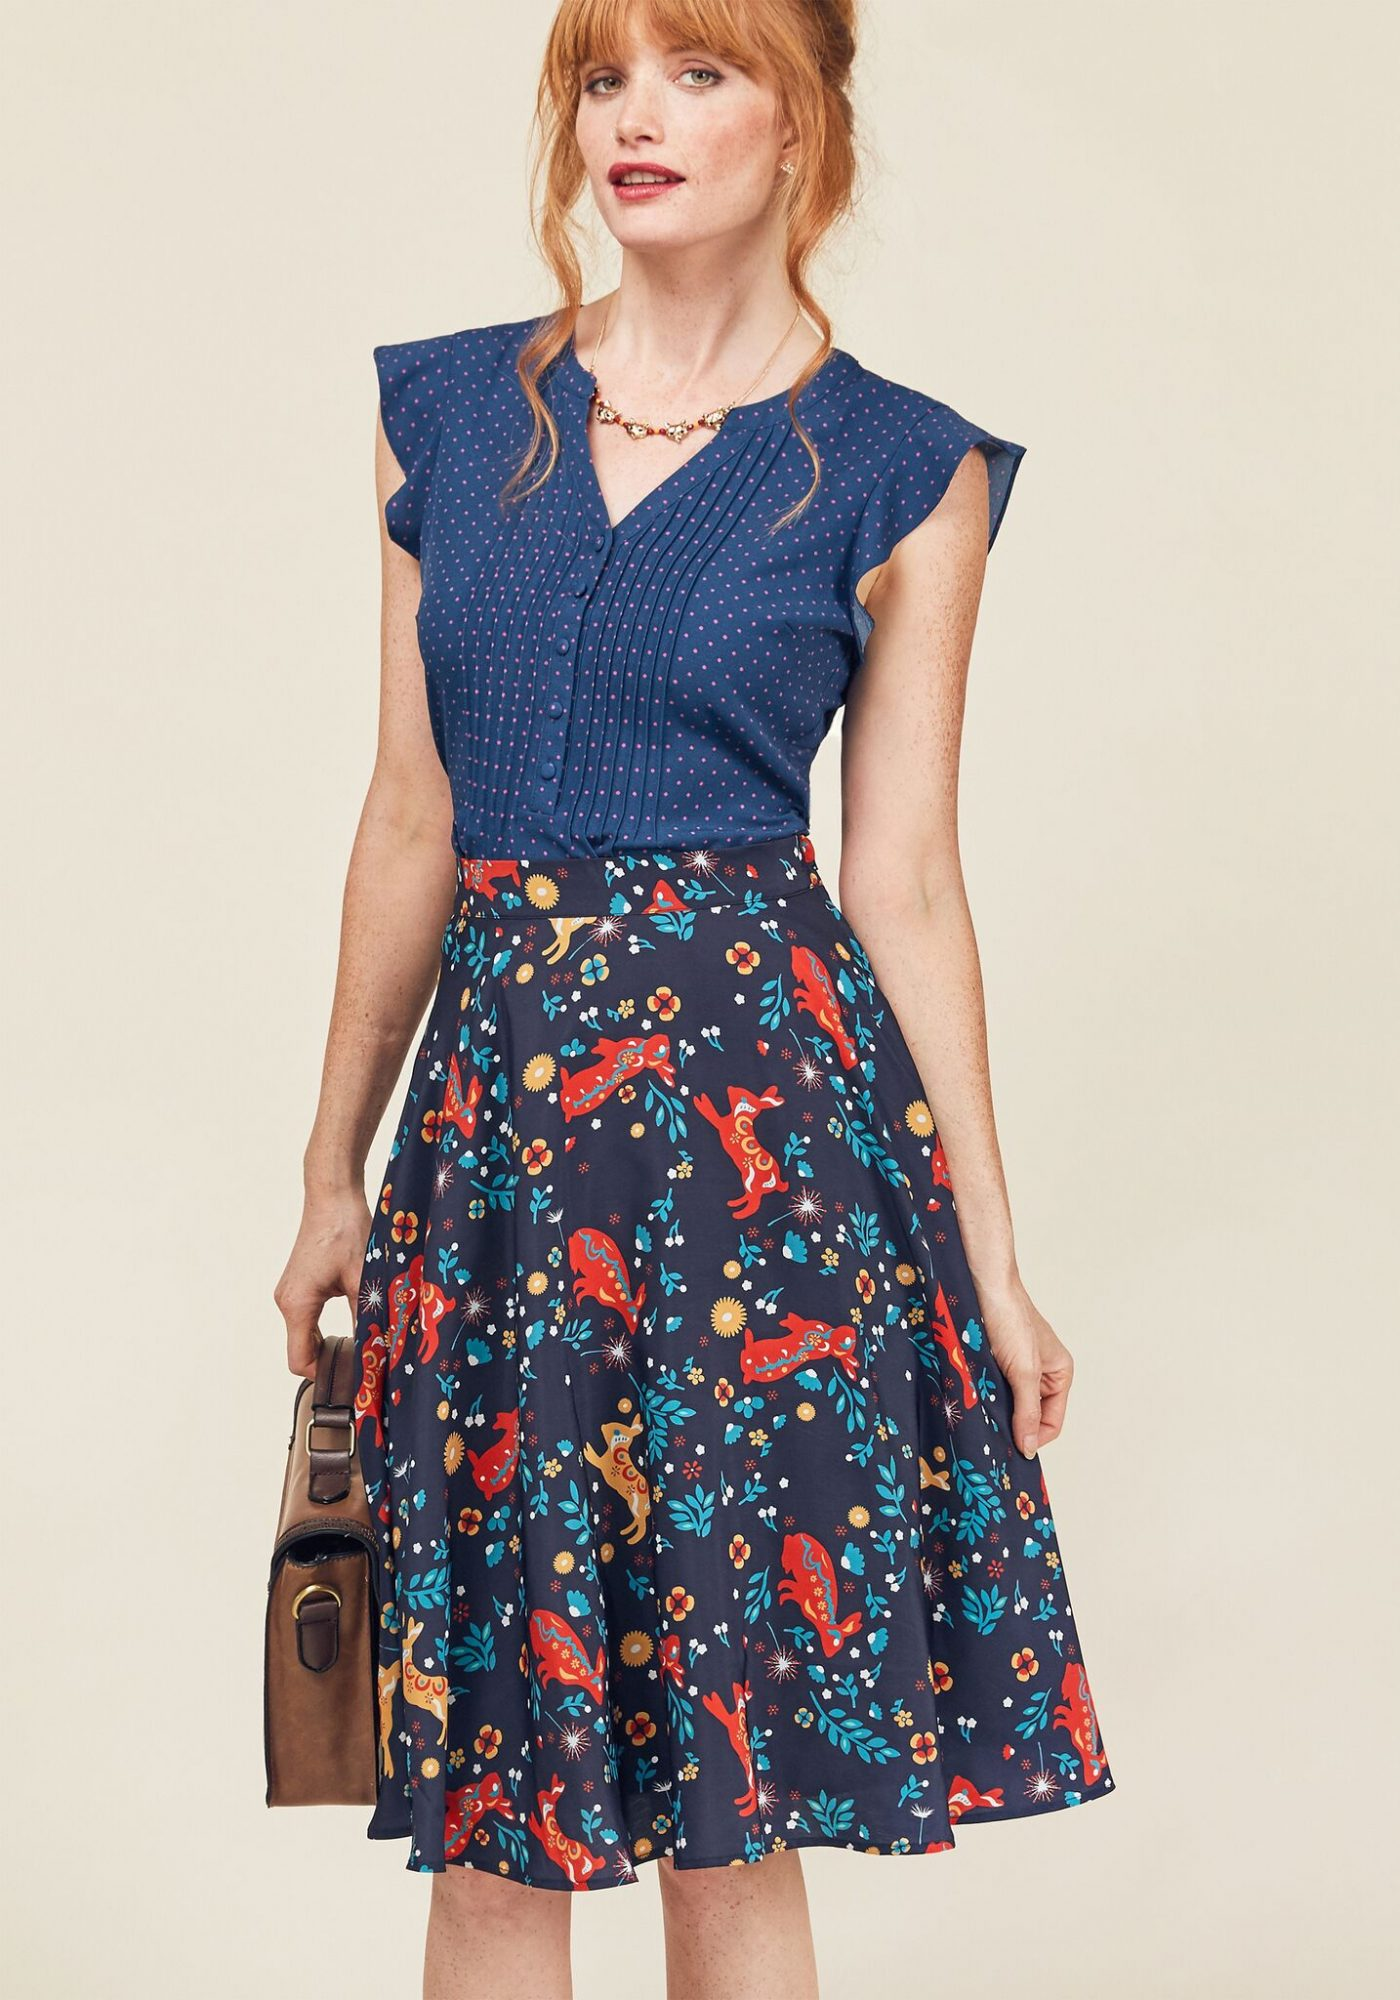 picture-of-modcloth-skirt-photo.jpg